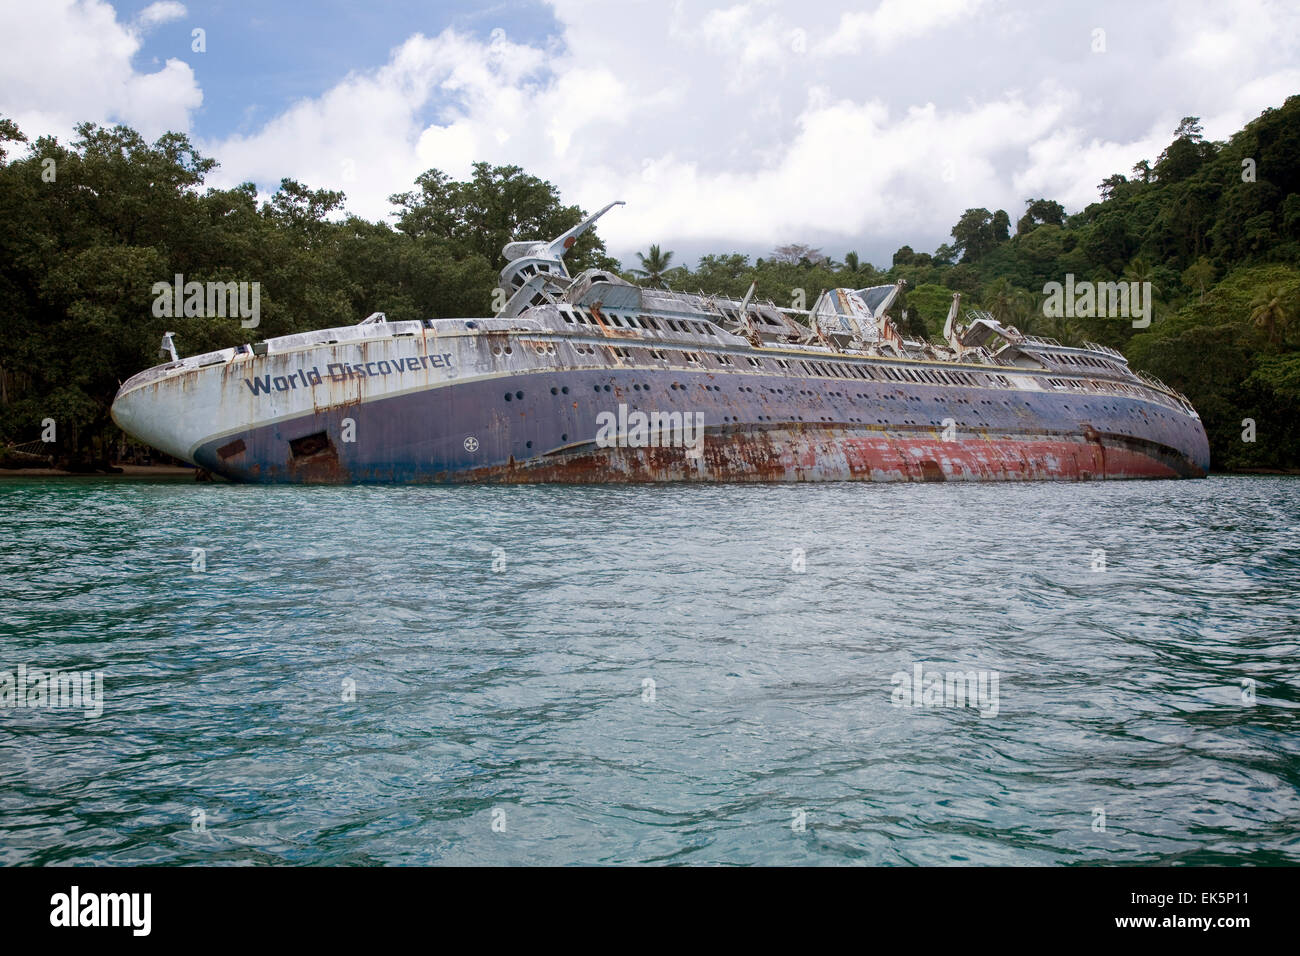 The Aussie expedition cruiser Orion pays a call on its new Melanesia & Solomon Islands itinerary to Ngella Island. - Stock Image